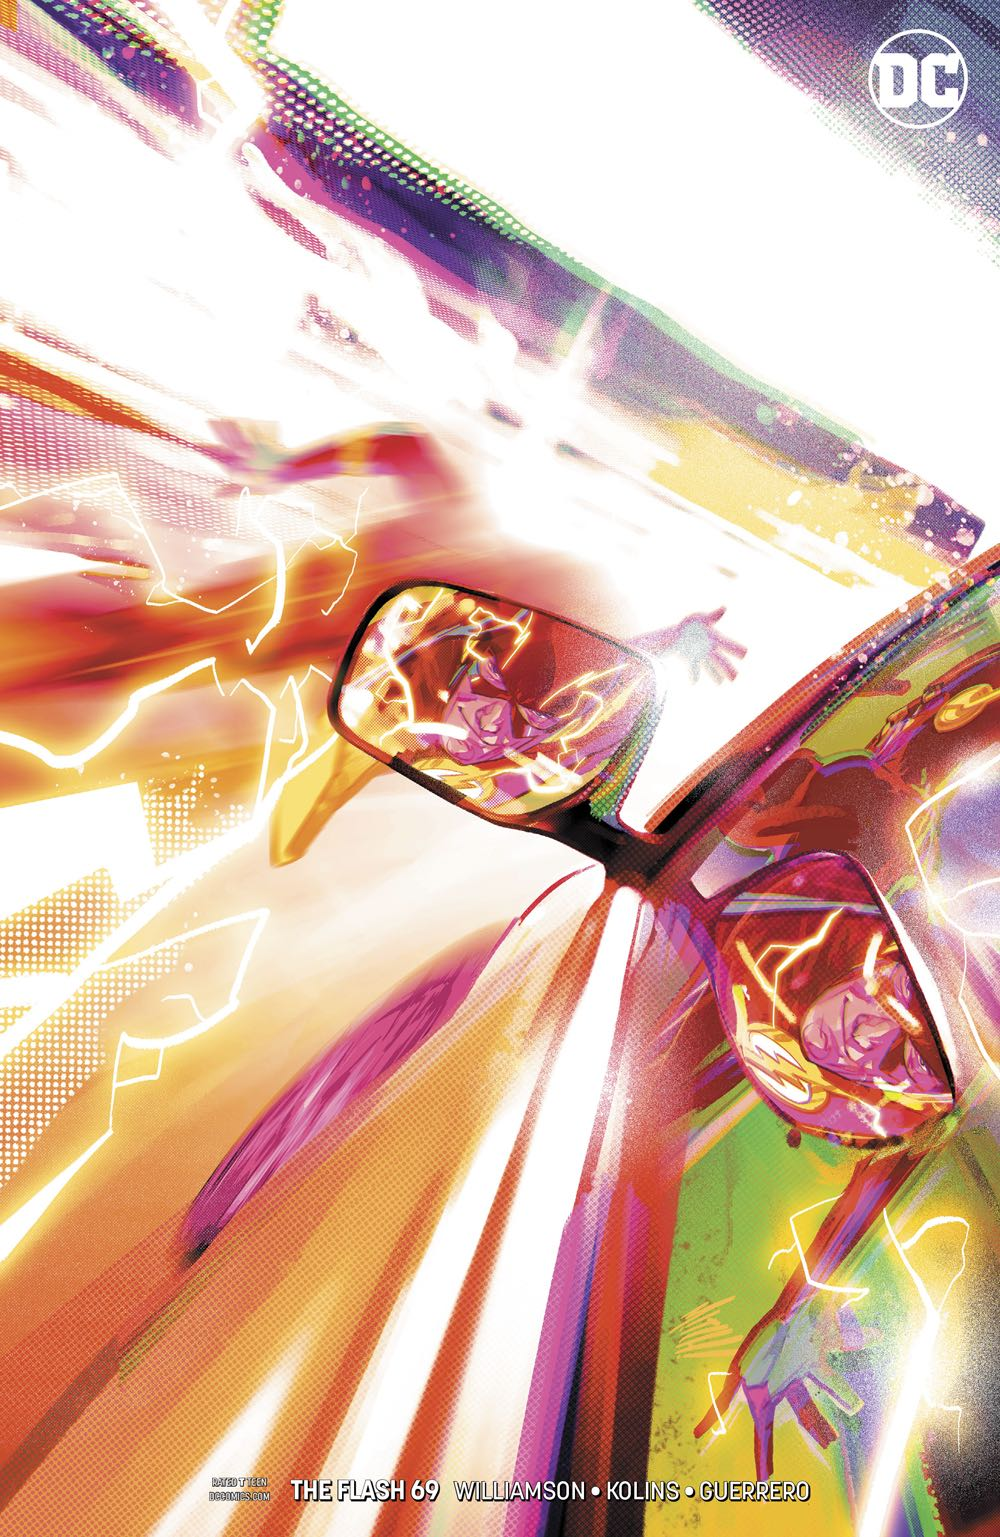 The Flash #69 Review